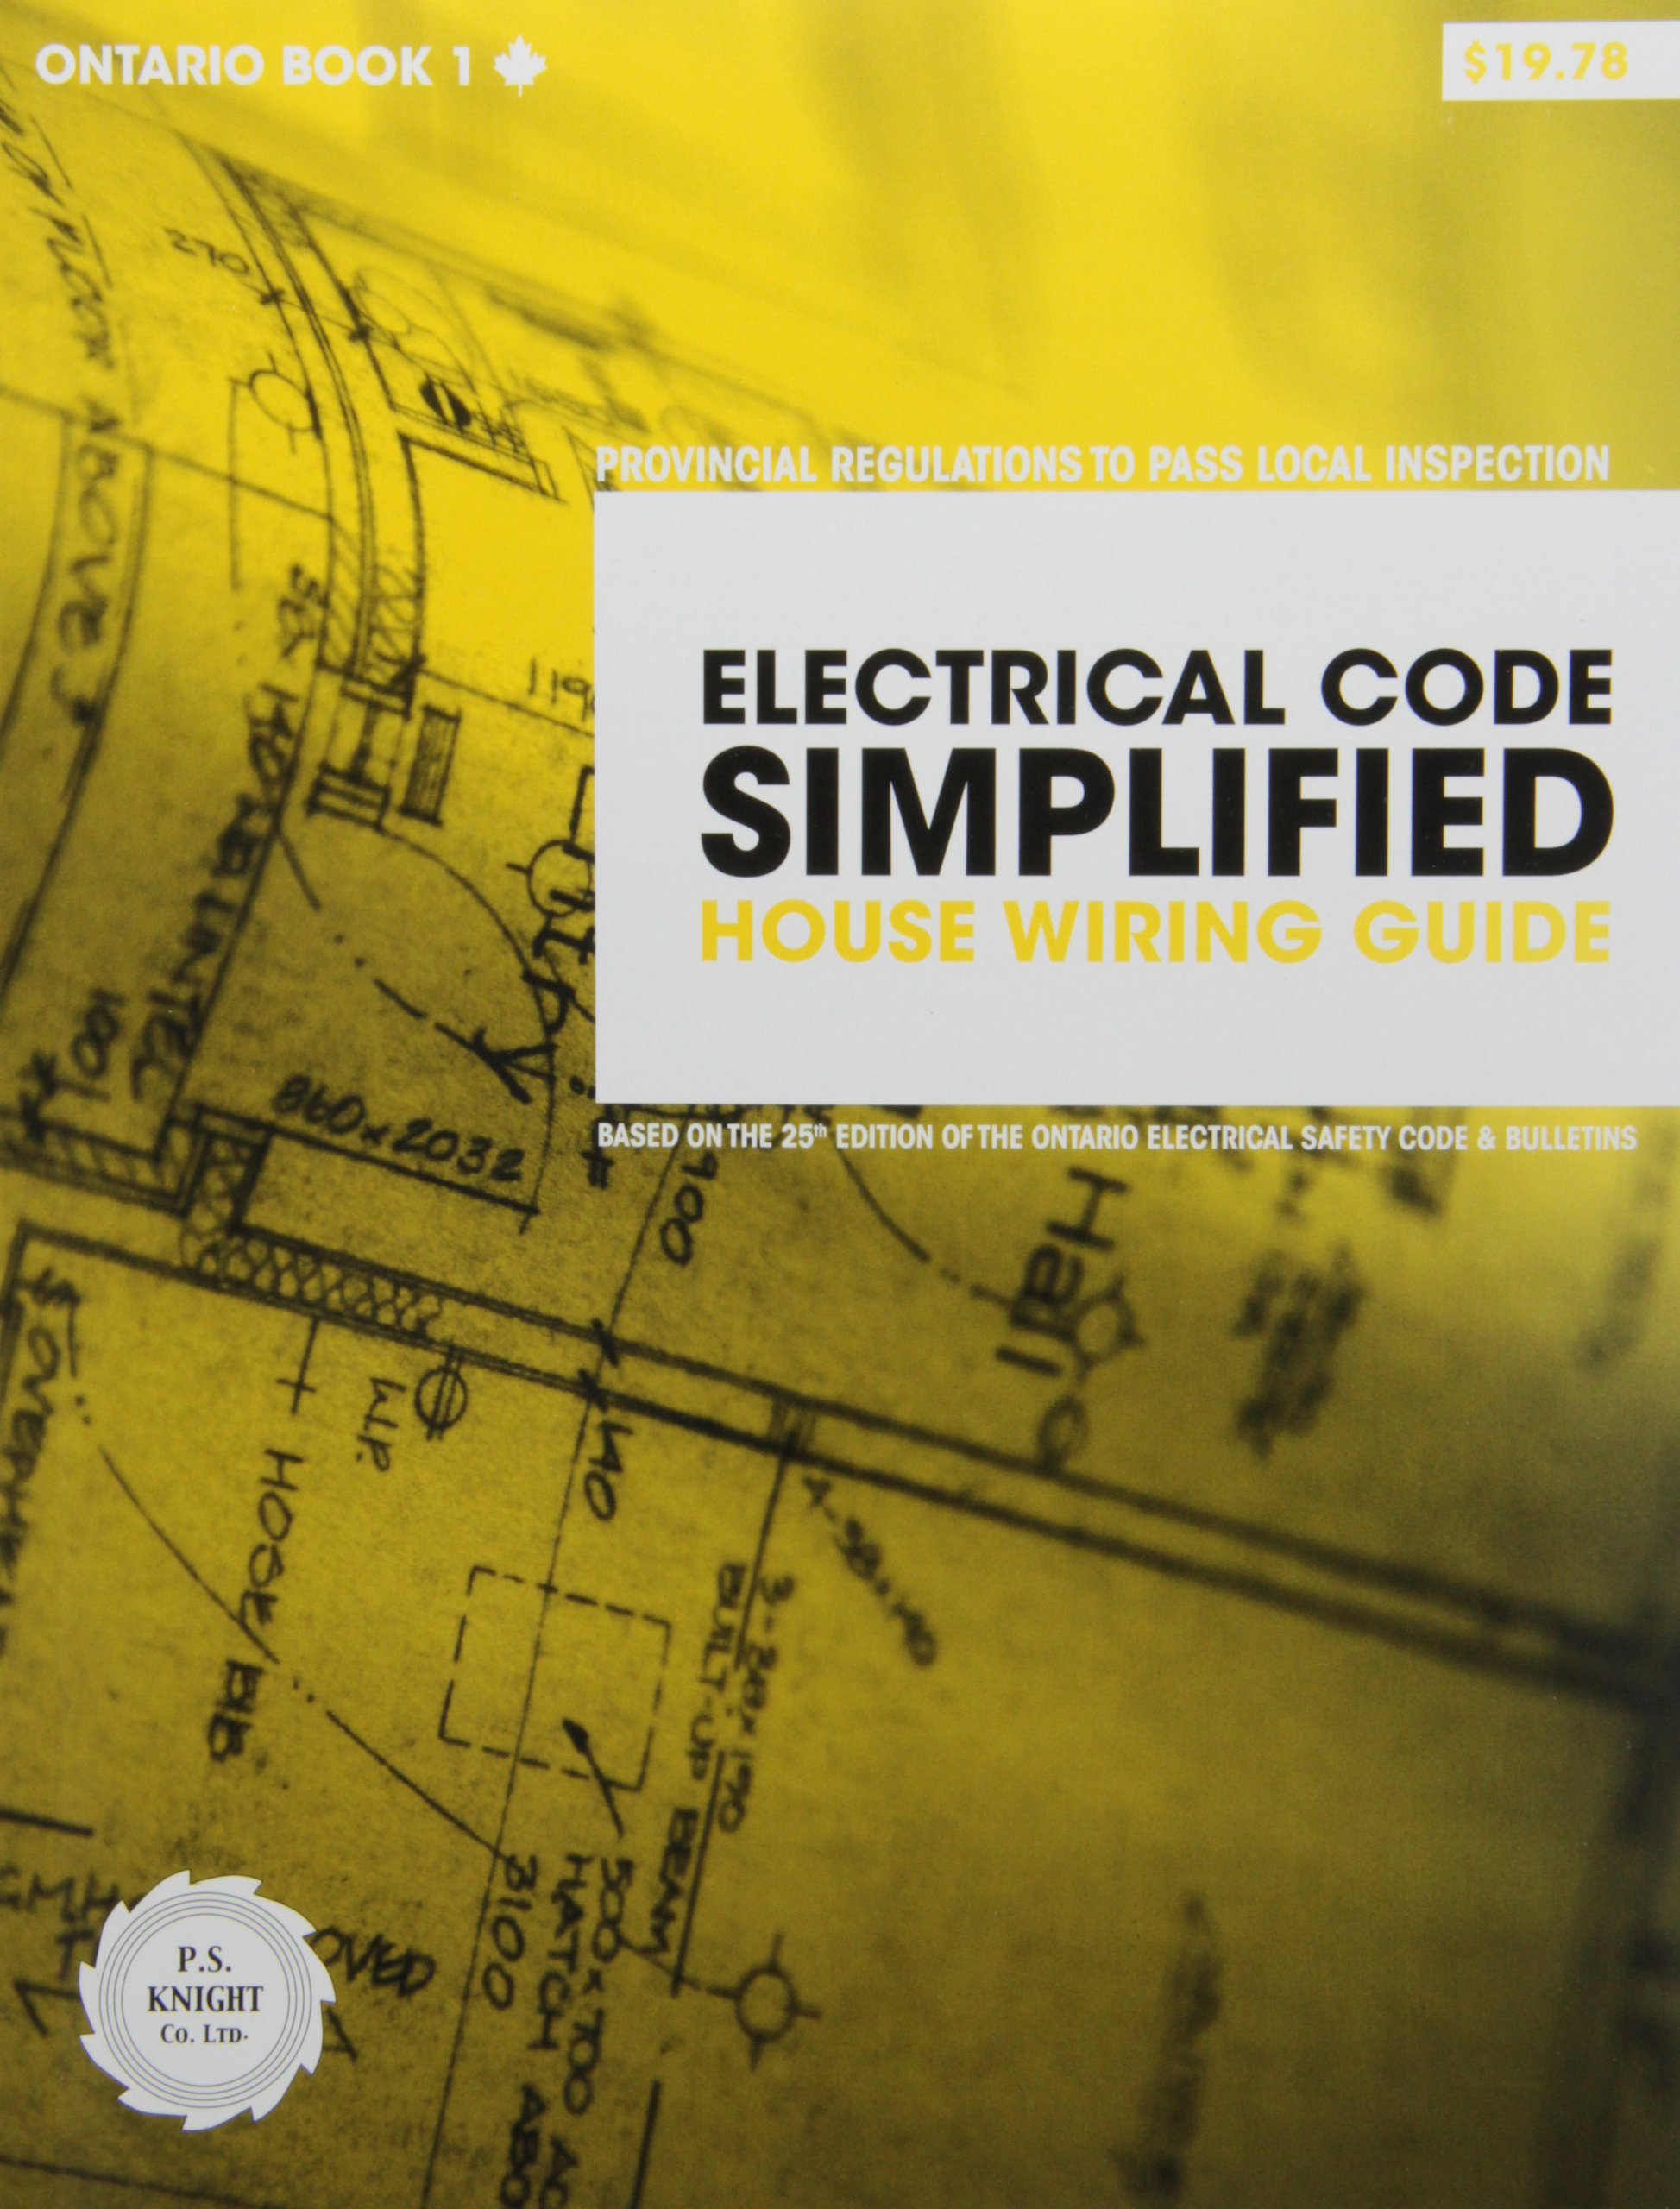 Electrical Code Simplified Ontario Book 1 House Wiring Guide P S Electrician Knight 9780920312476 Books